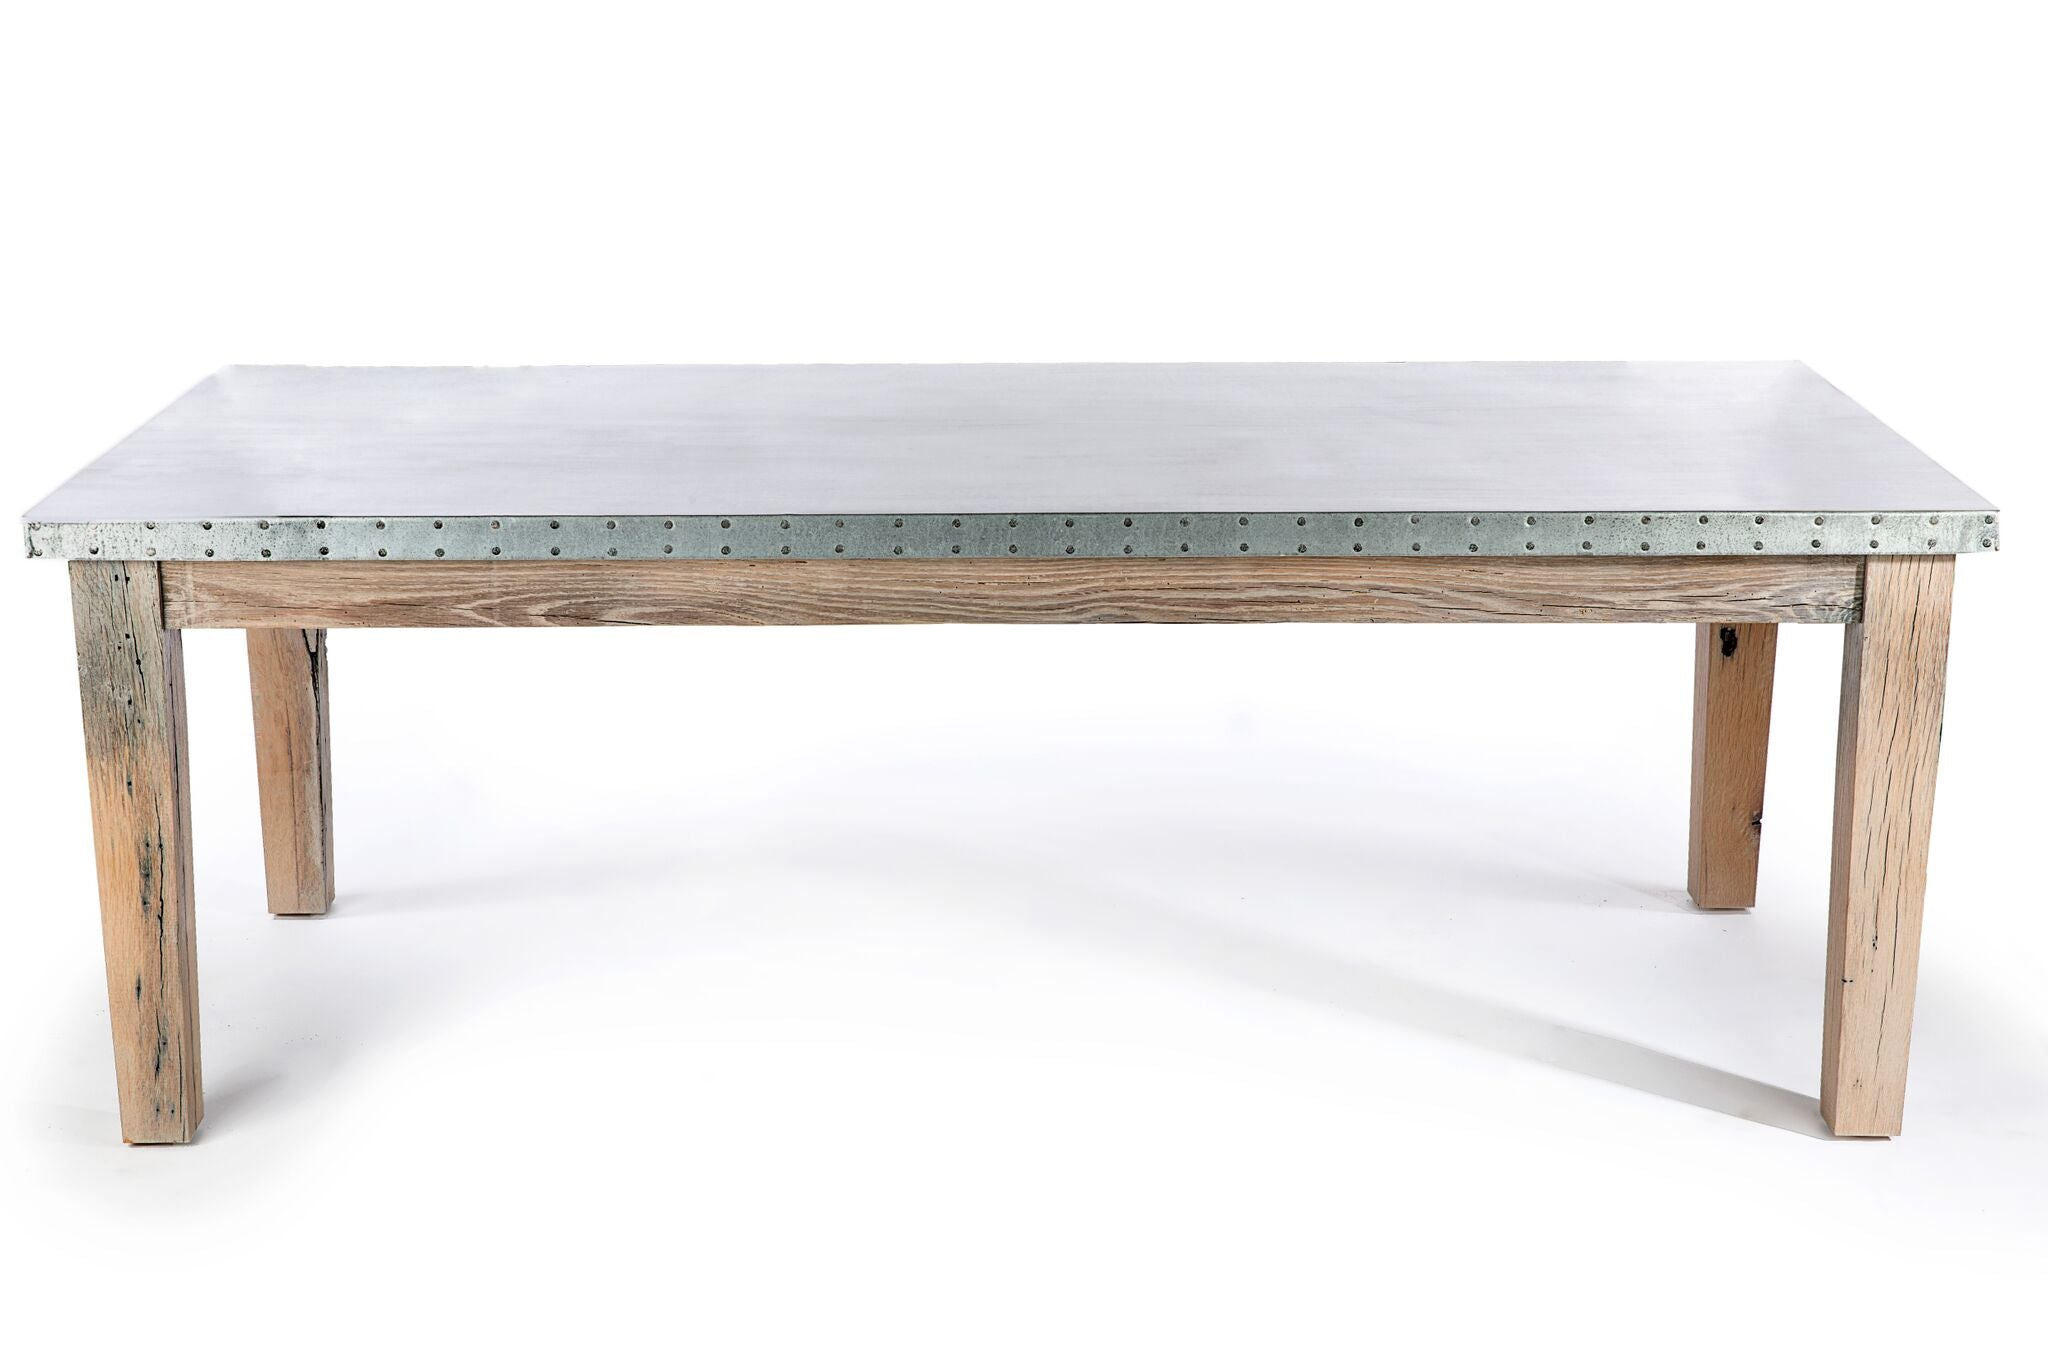 "Zinc Rectangular Table | Cambridge Table | CLASSIC | Natural Ash | CUSTOM SIZE 61""L 38""W 31""H 